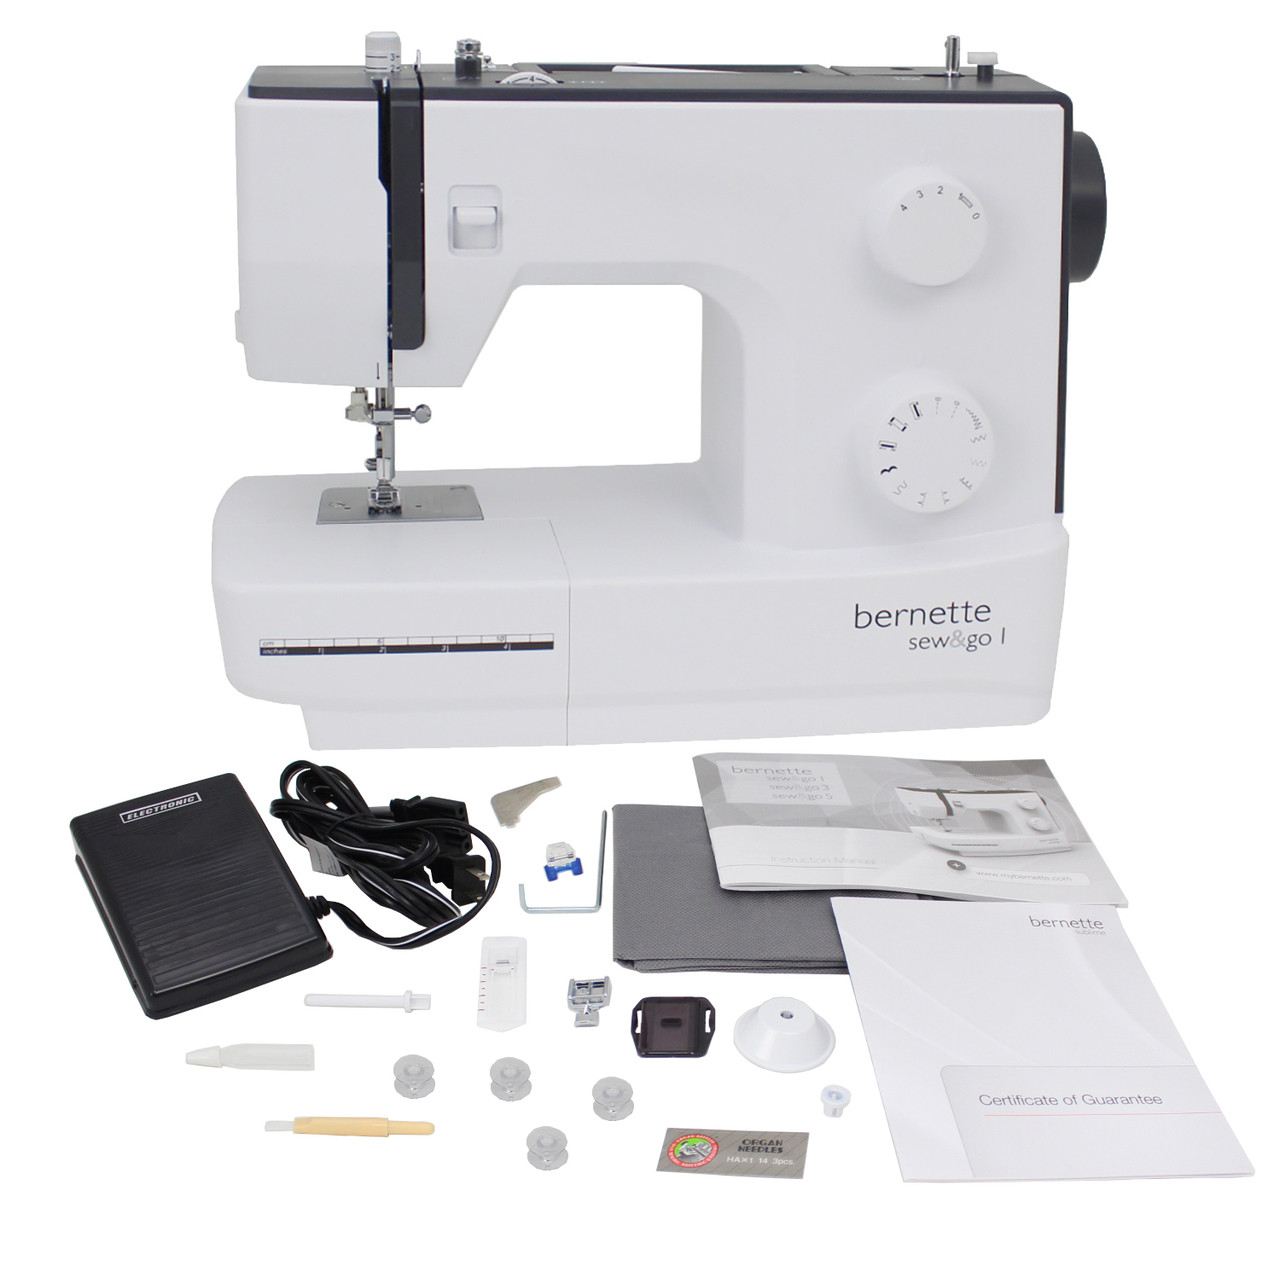 Bernette Sew and Go 1 Swiss Design Sewing Machine $149.00 - FREE ...